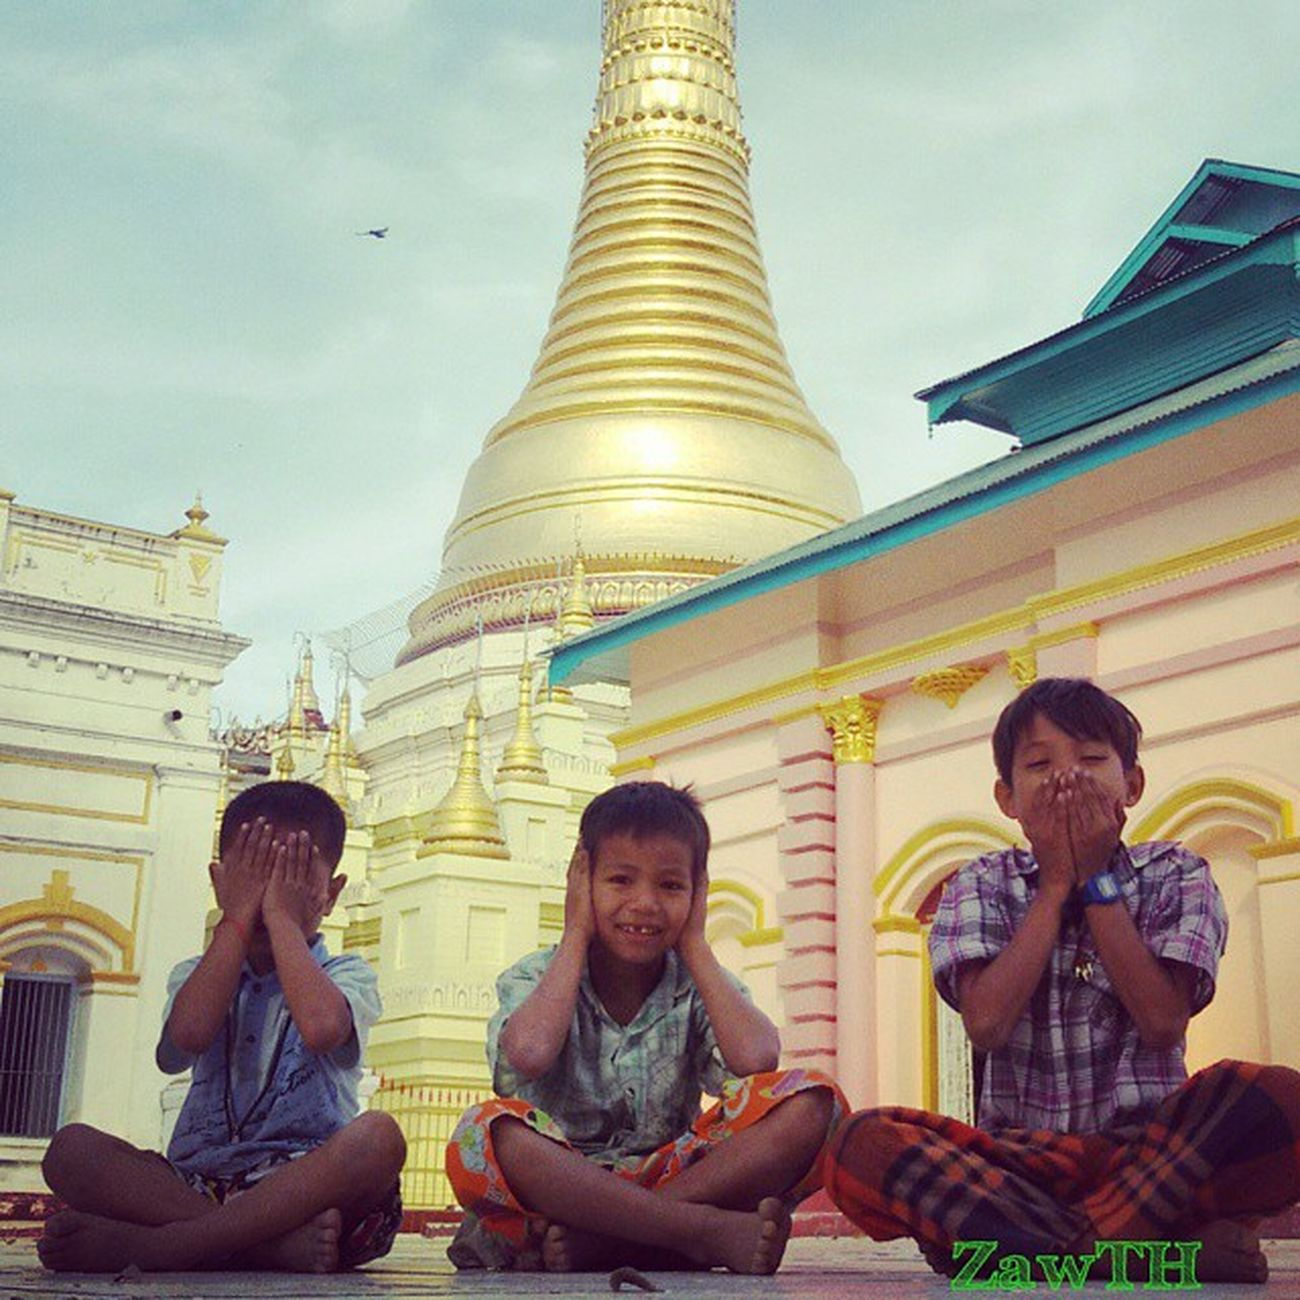 See no Devil Listen no Devil Say no Devil Wisemonkeys Threemonkeys Burmeseboys Myanmarboys Say Monywa Seenodevil Listennodevil Saynodevil Shweguni Pagoda Sagaing Igersoftheday Igersmyanmar Igersmandalay Vscomyanmar Burmeseigers Exploremyanmar Goldenland Bsn_family Myanmar Burma Mandalay Innocent Ig_photo_life ig_children children mobilephotography zawth